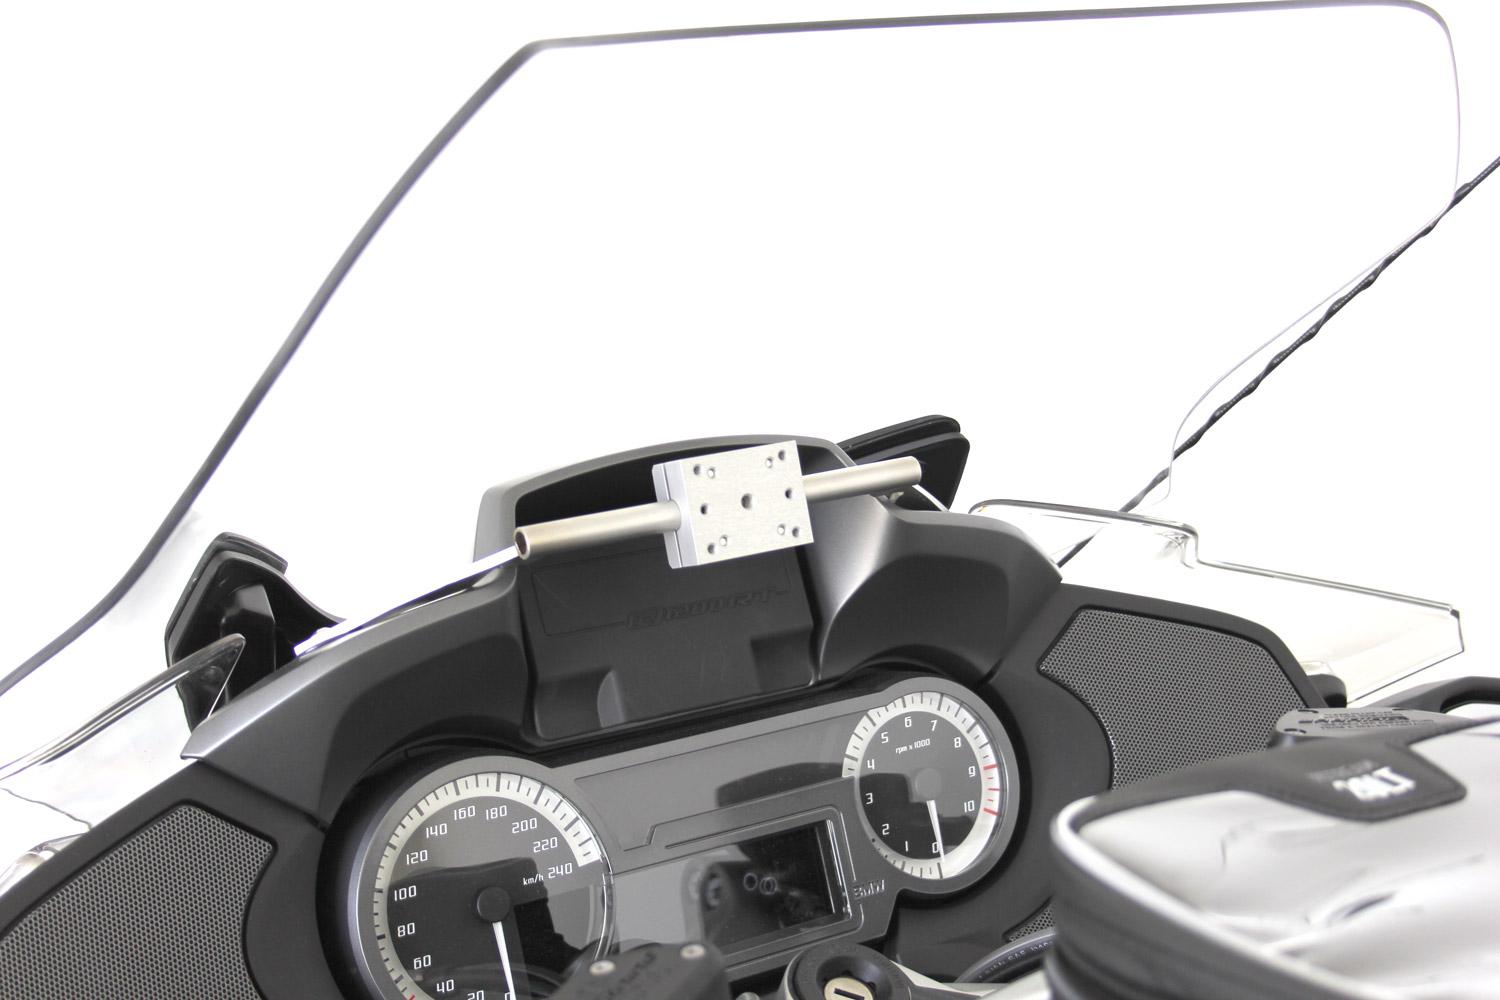 gps halterung r1200rt motorrad news. Black Bedroom Furniture Sets. Home Design Ideas